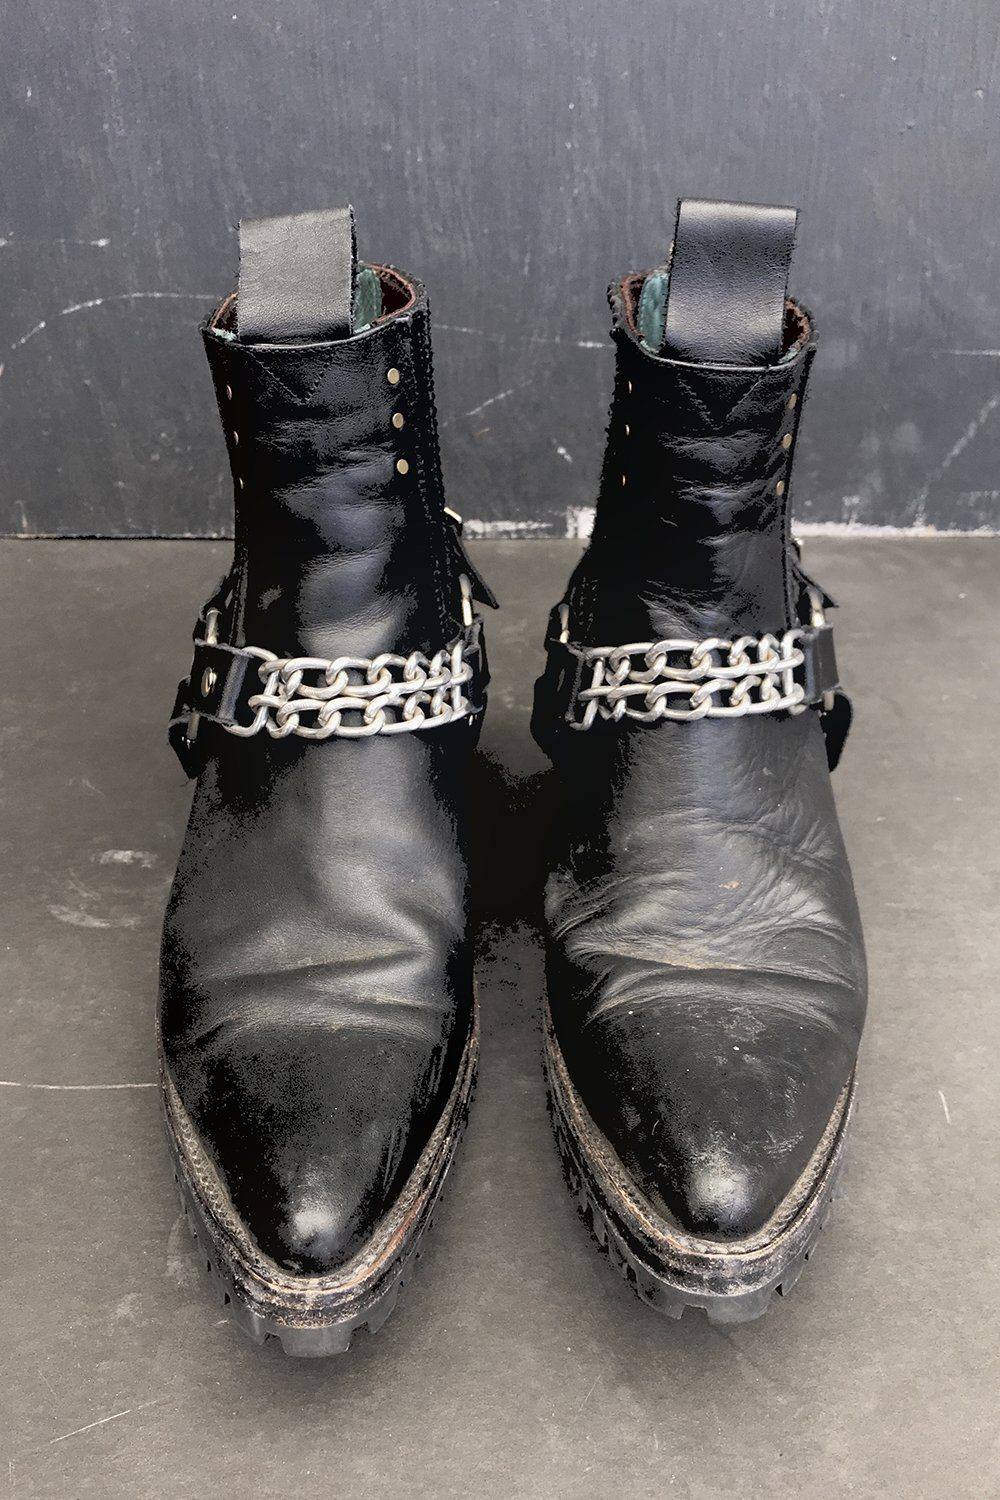 Black Leather Chain Boot Straps by Hell Bent Leather, Accessories, Hell Bent Leather, BACKBITE